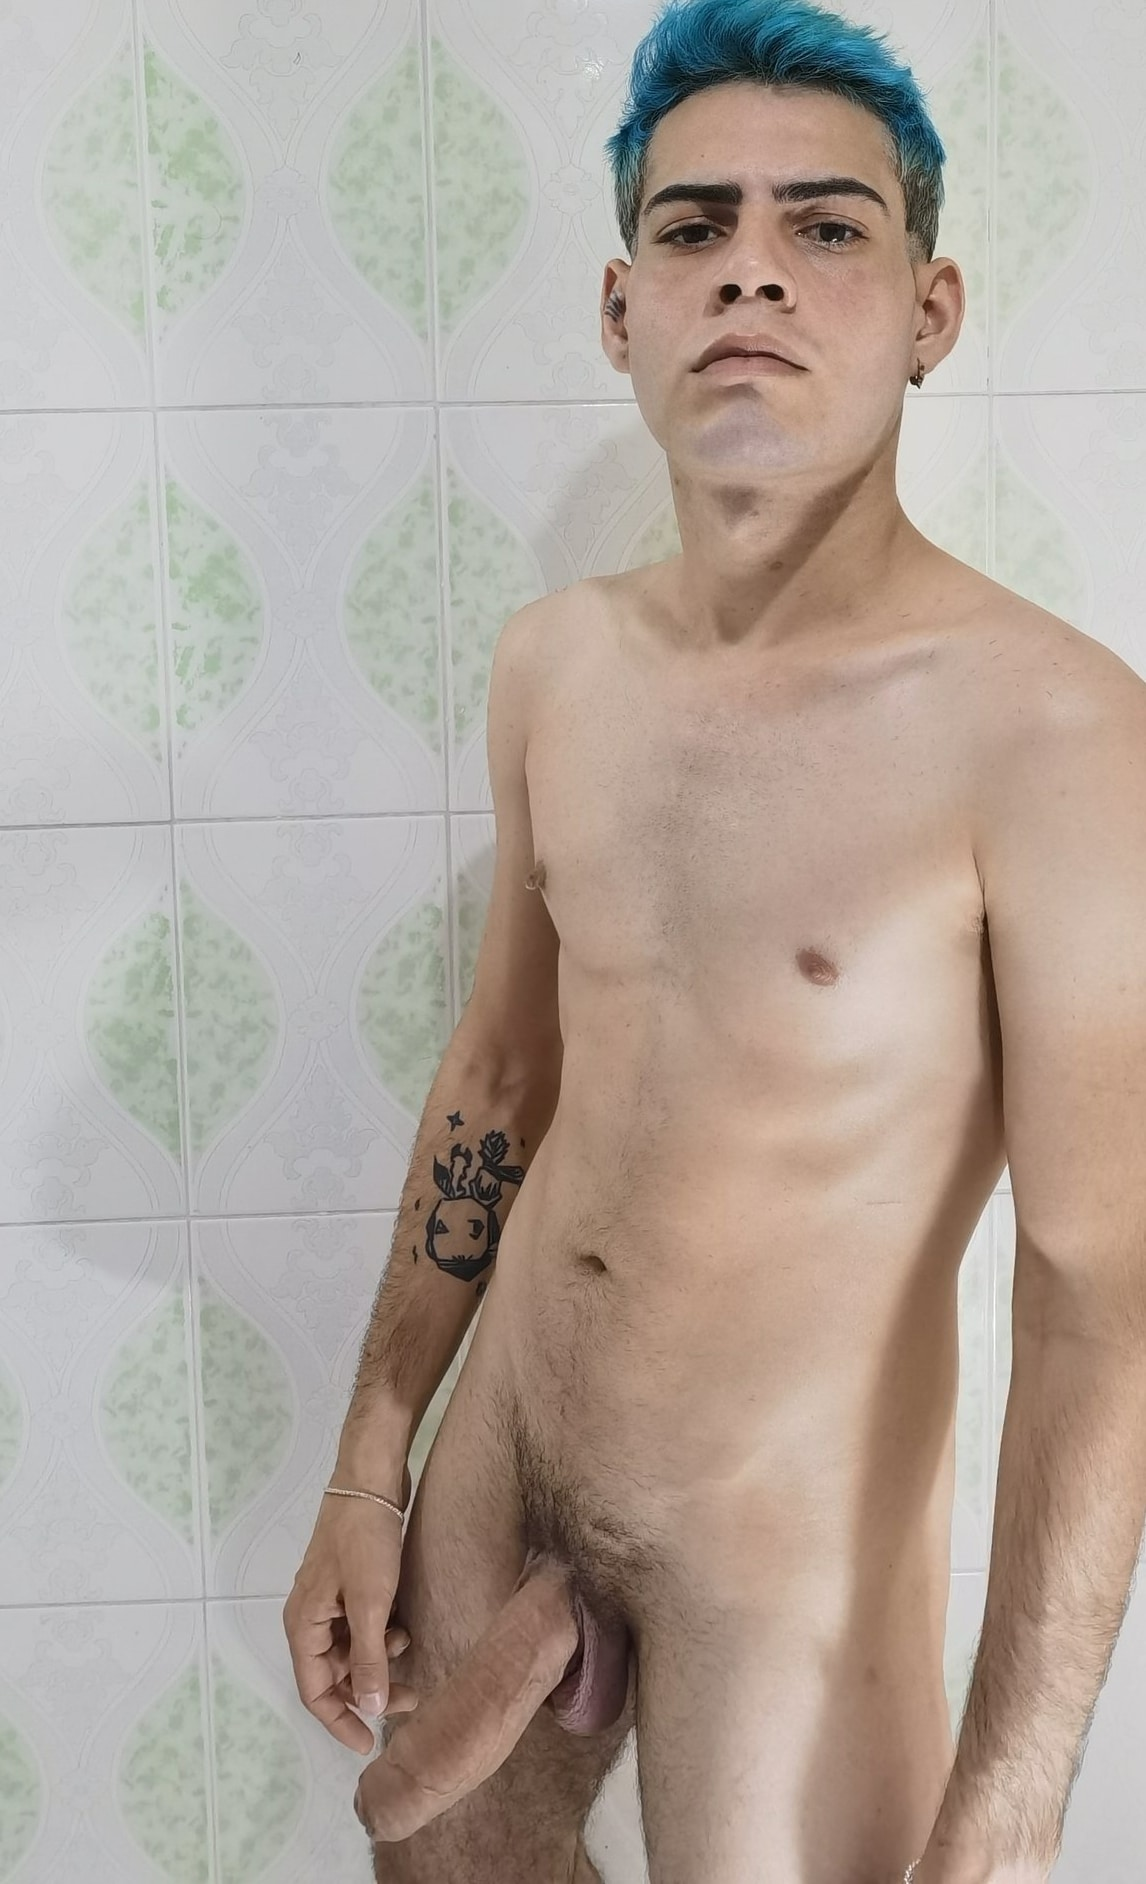 Blue hair and a sexy cock